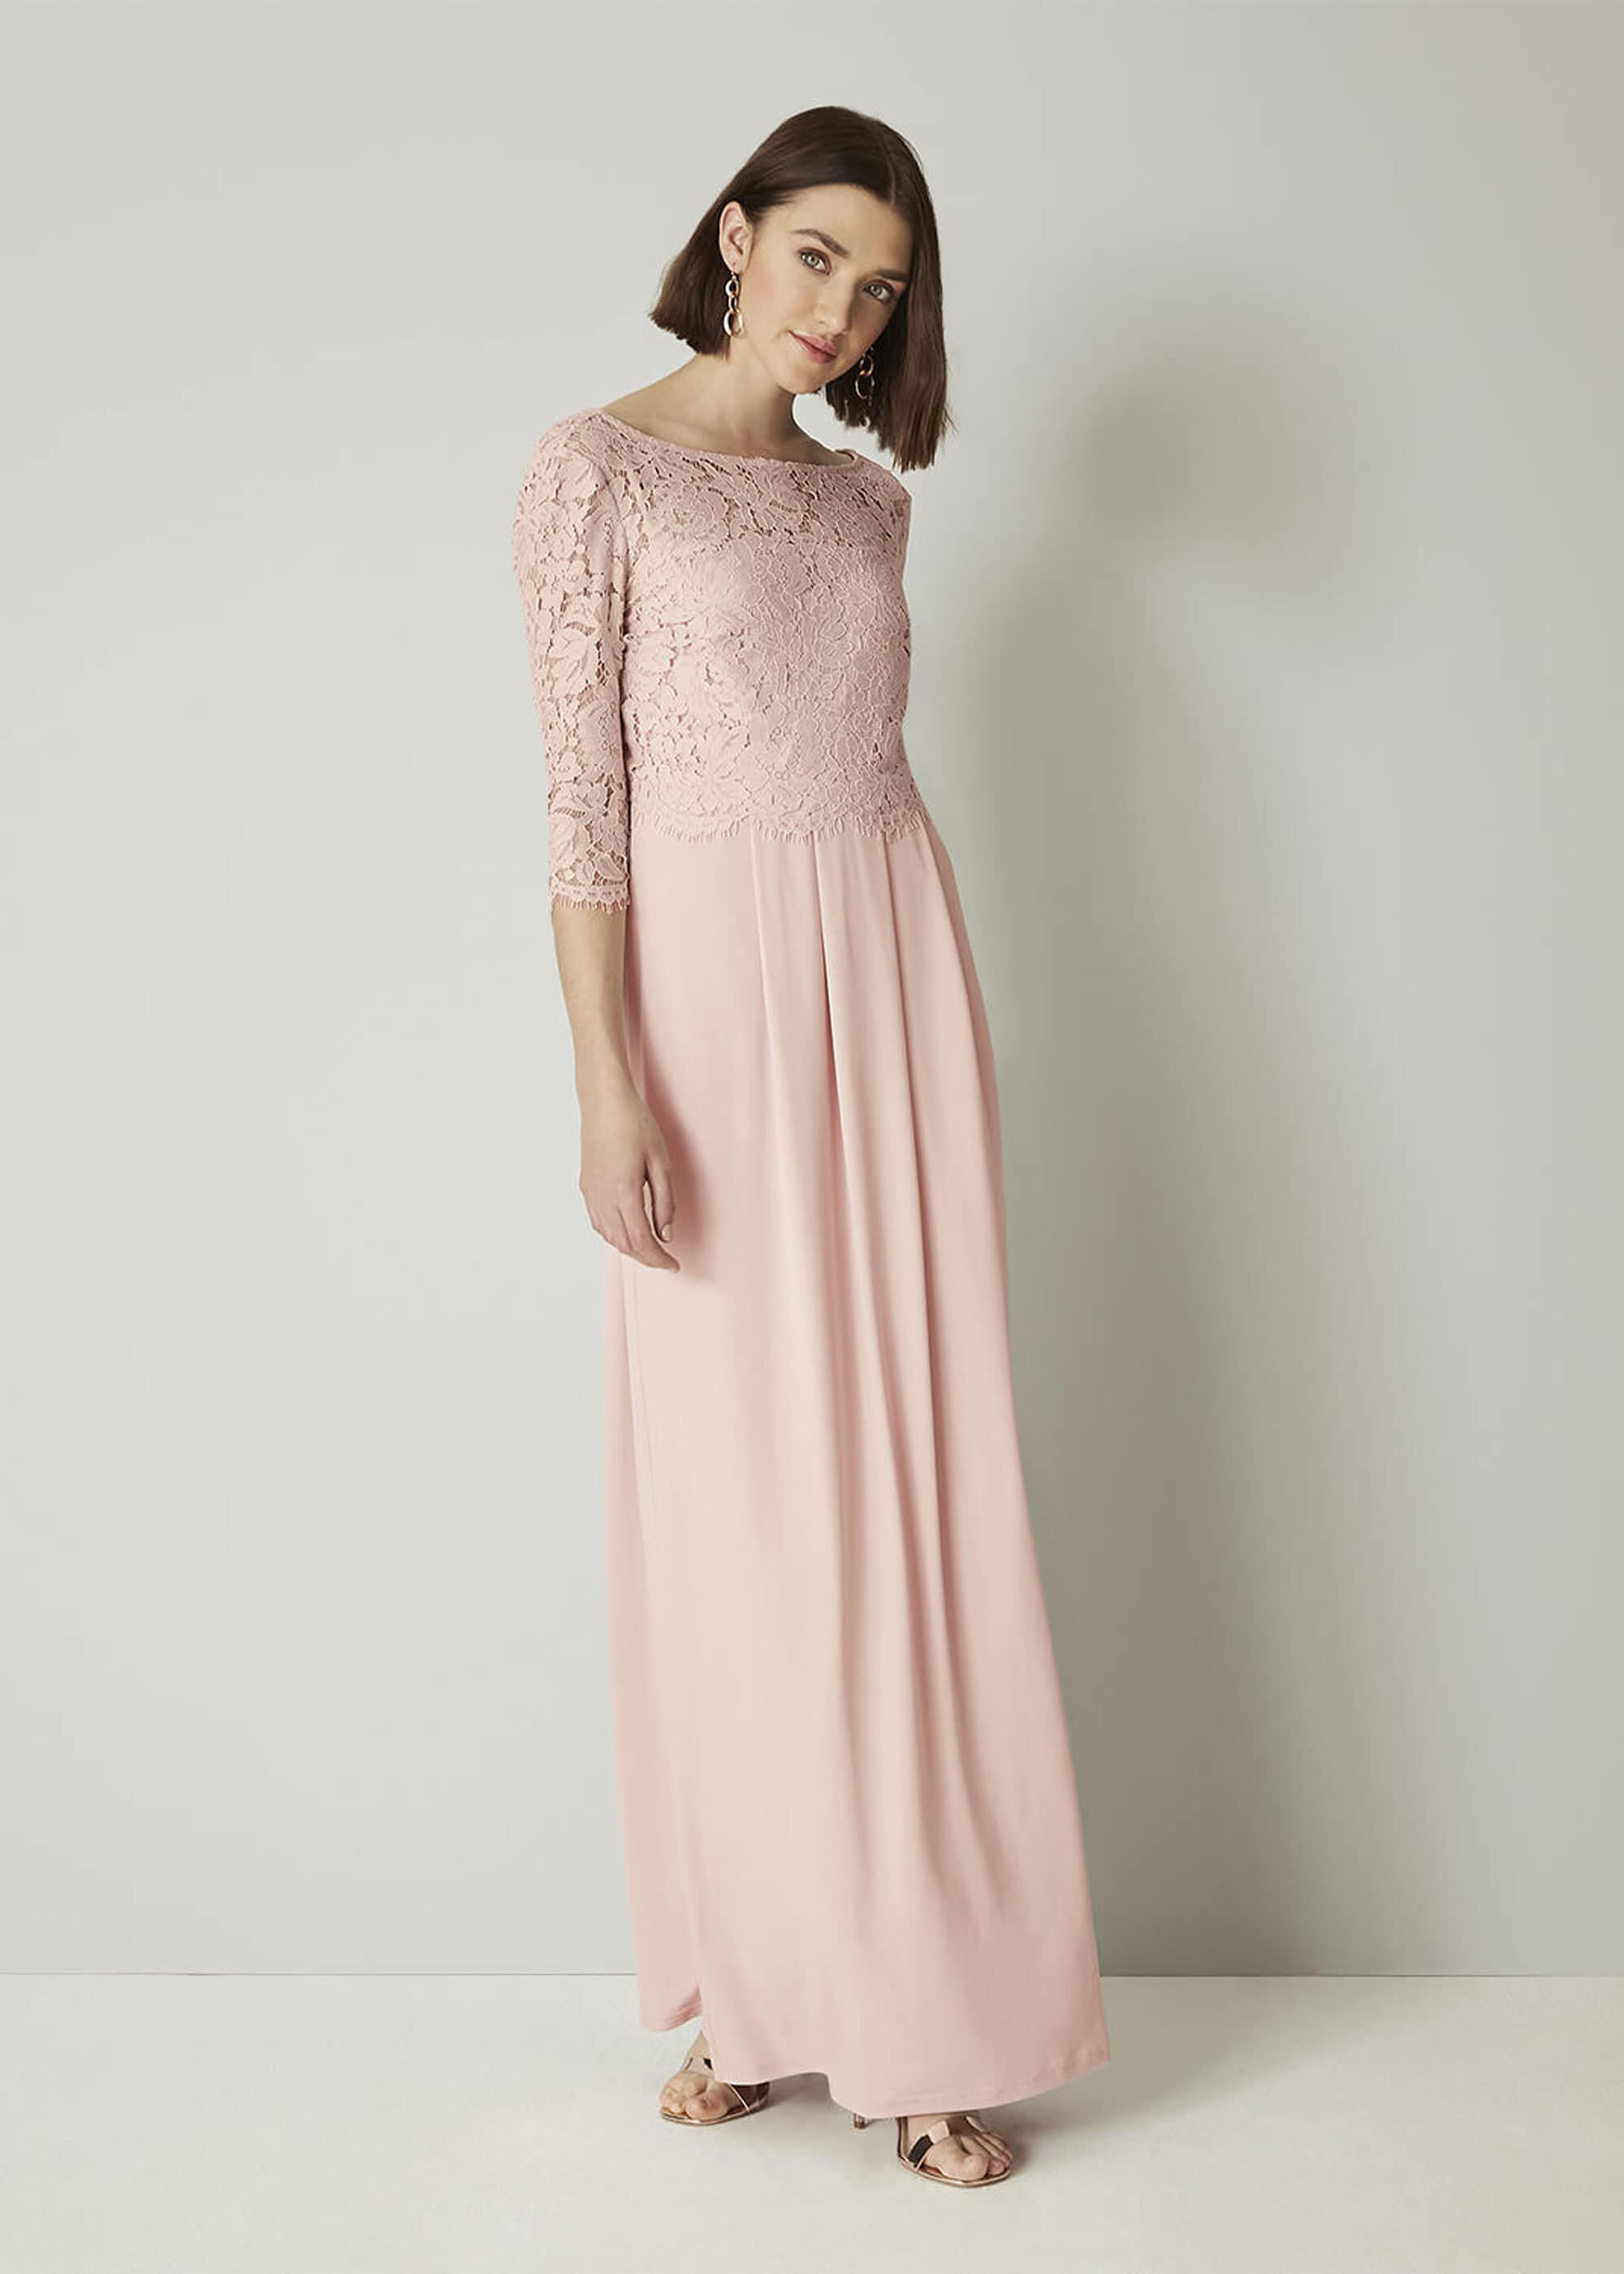 Portia Lace Maxi Bridesmaid Dress